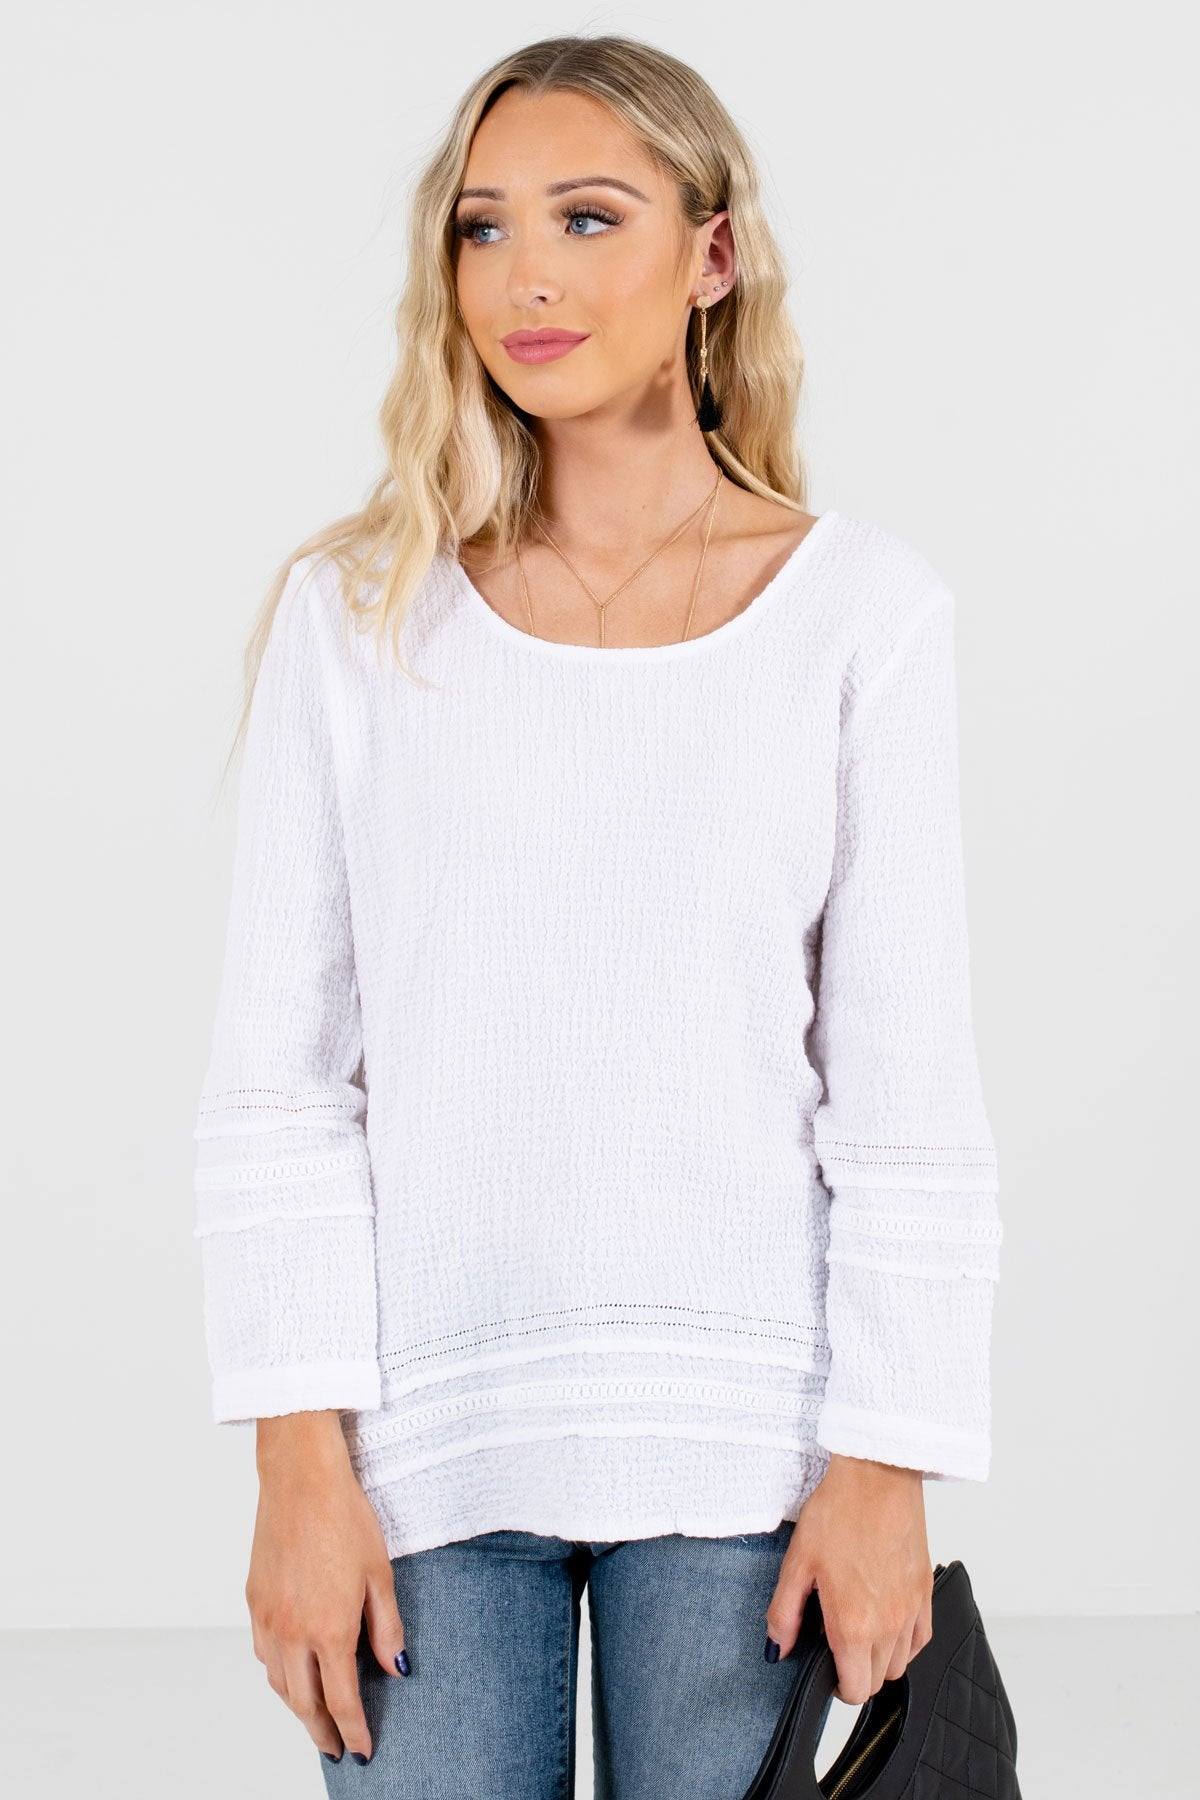 White High-Quality Textured Material Boutique Tops for Women